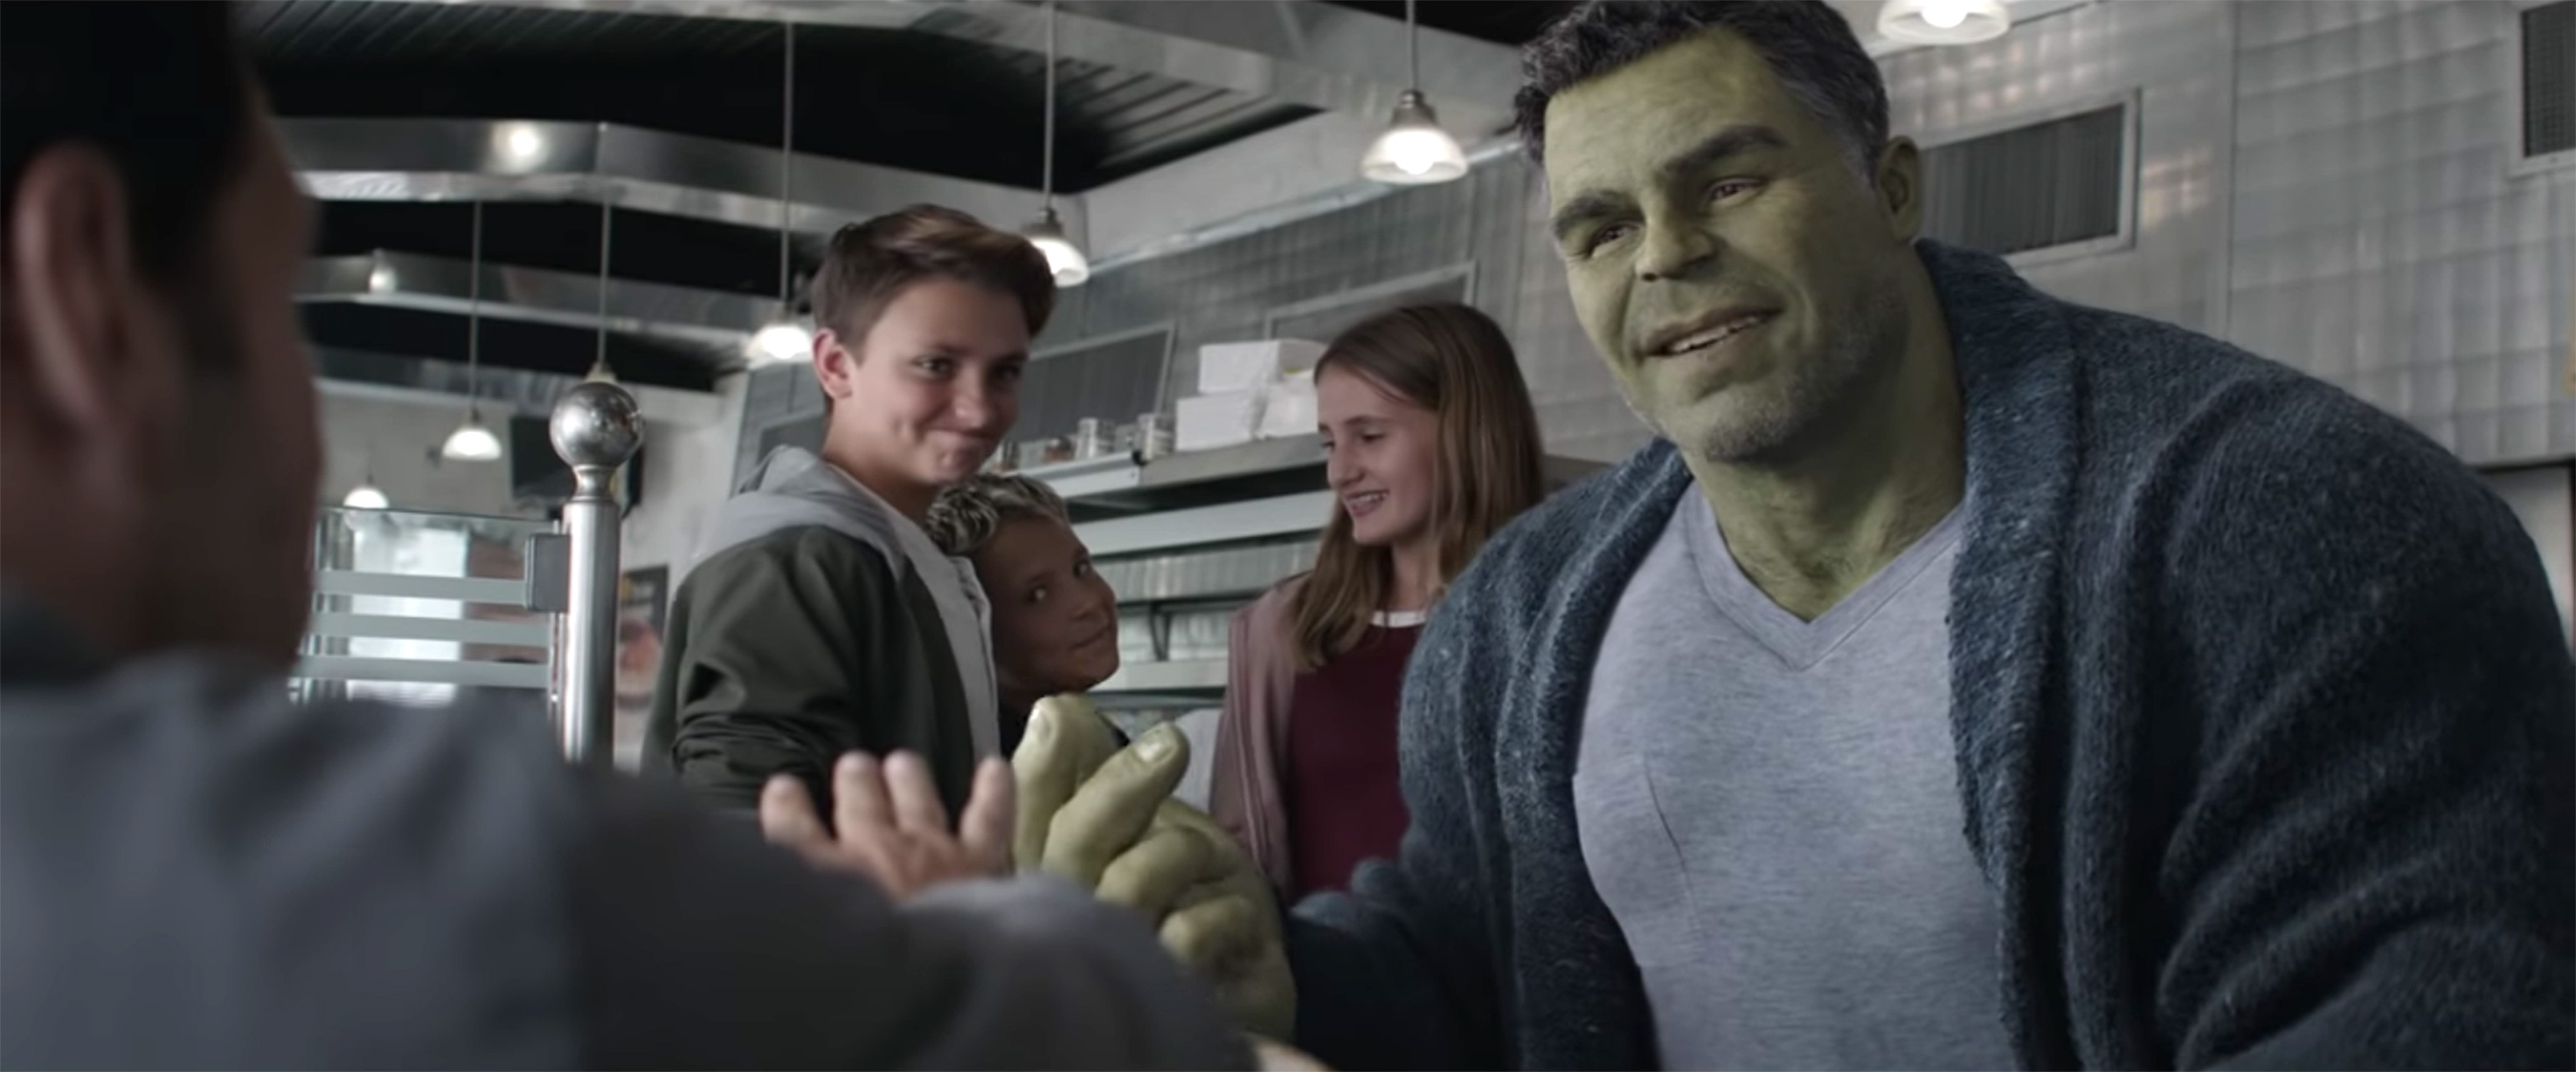 hulk at teh diner